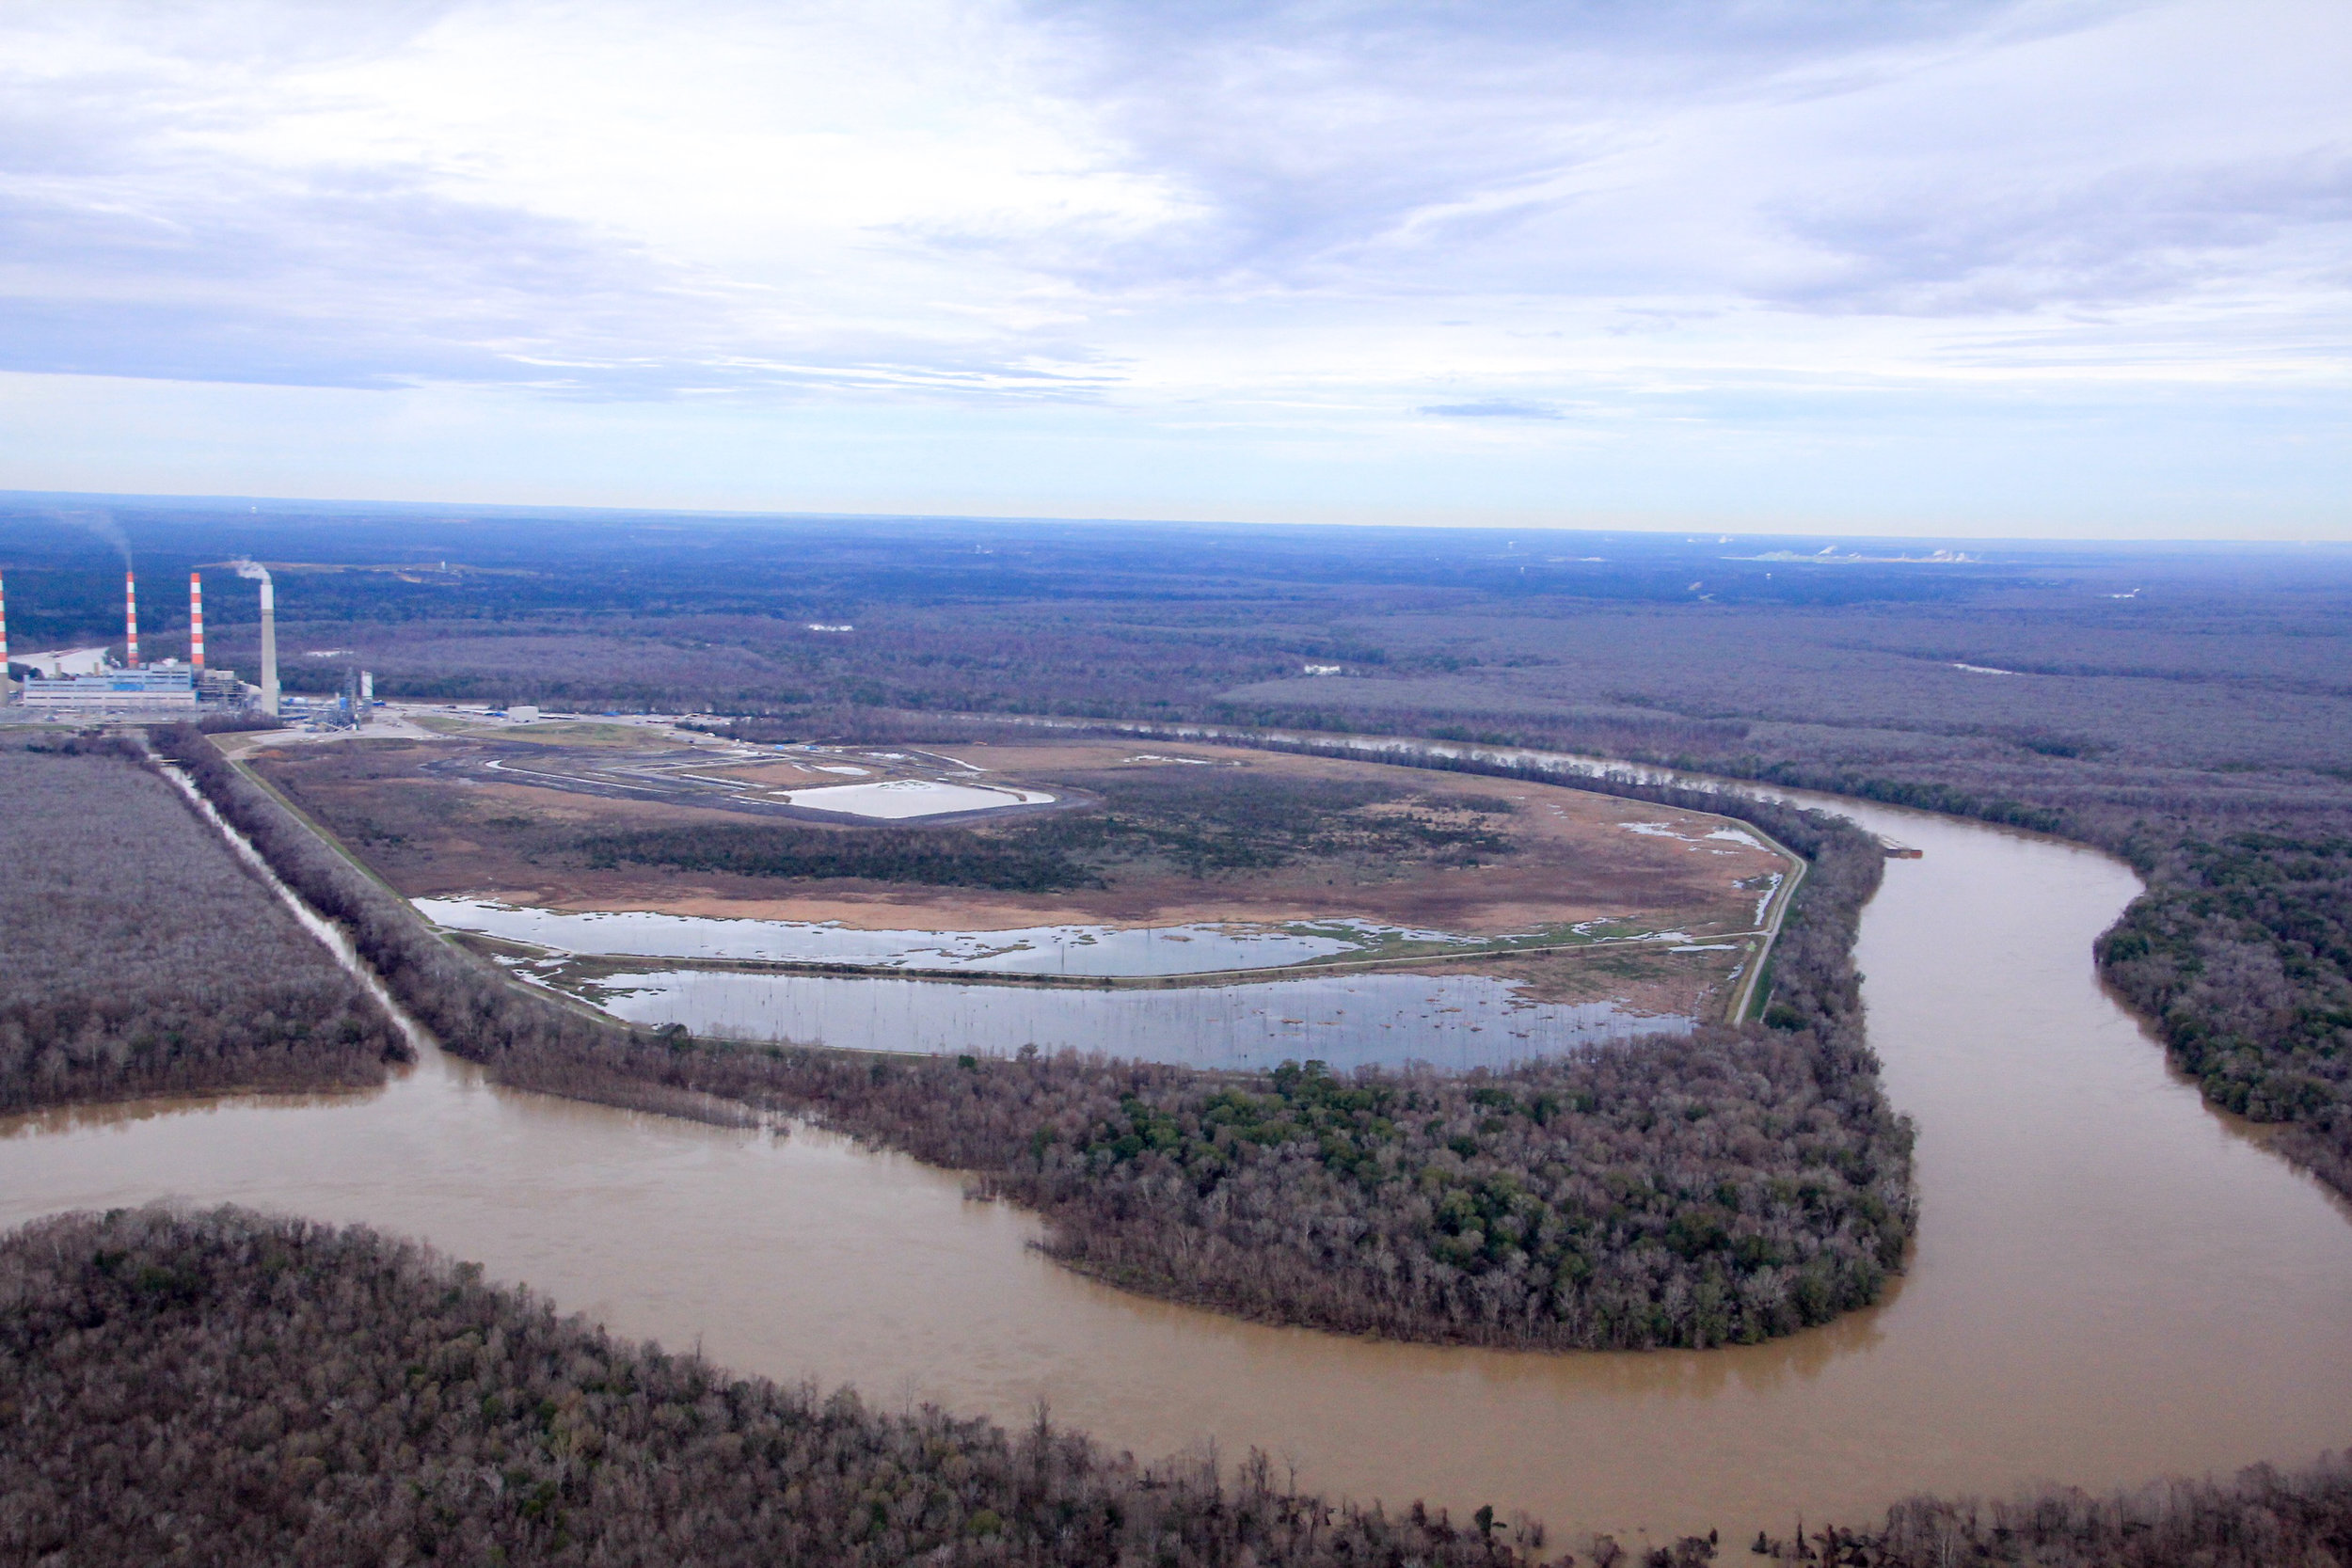 Above: High water shown on the Mobile River adjacent to Plant Barry after a period of heavy rain.